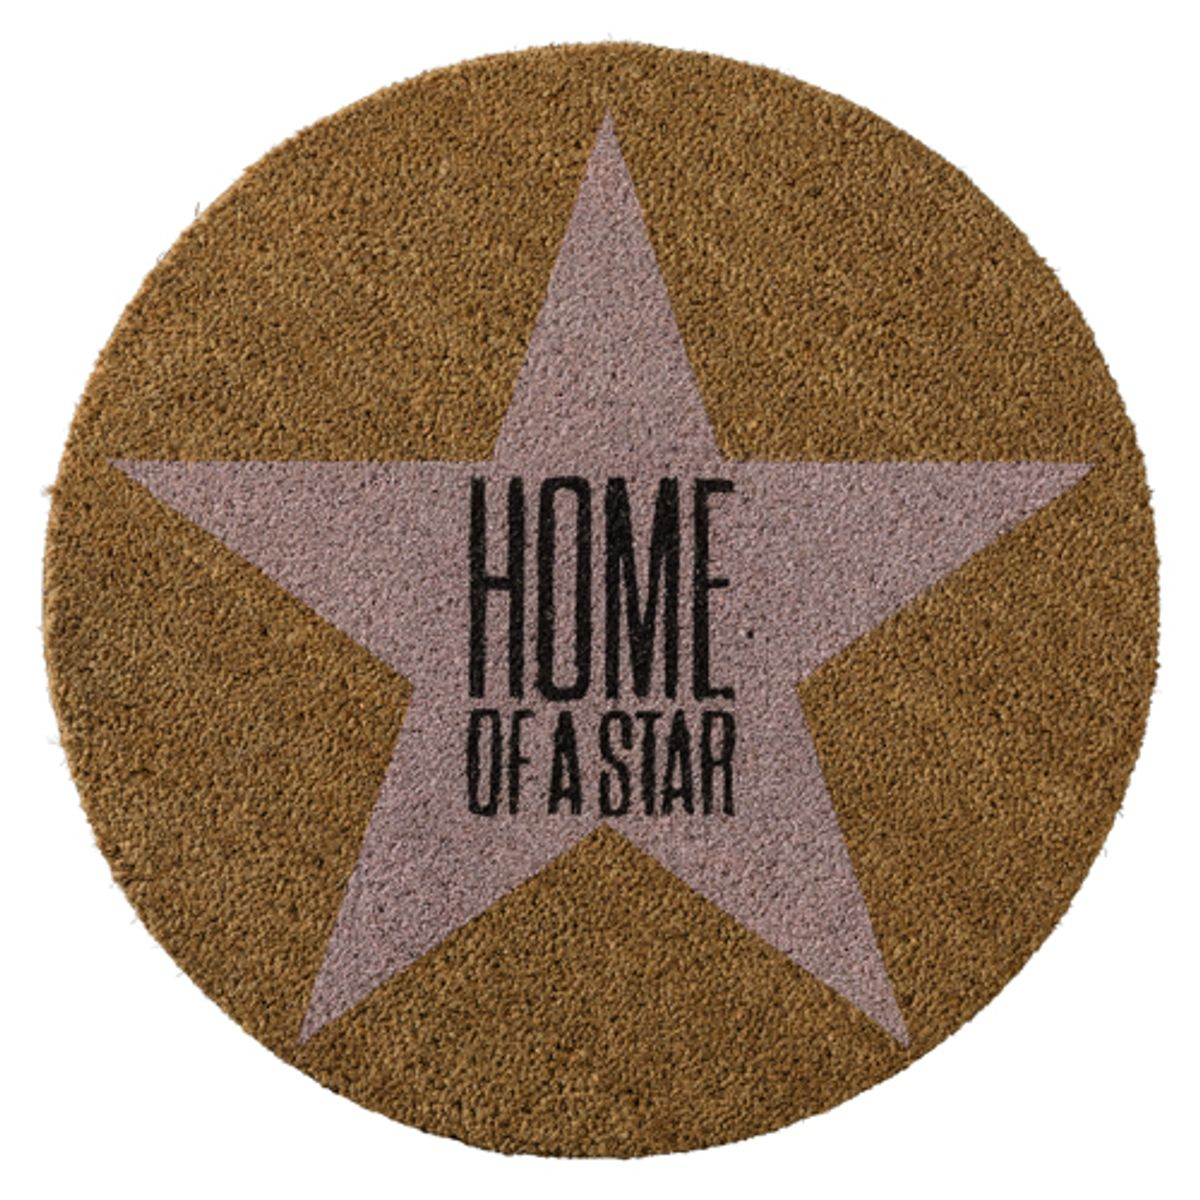 Paillasson rond coco naturel et rose  Home of a star  Bloomingville